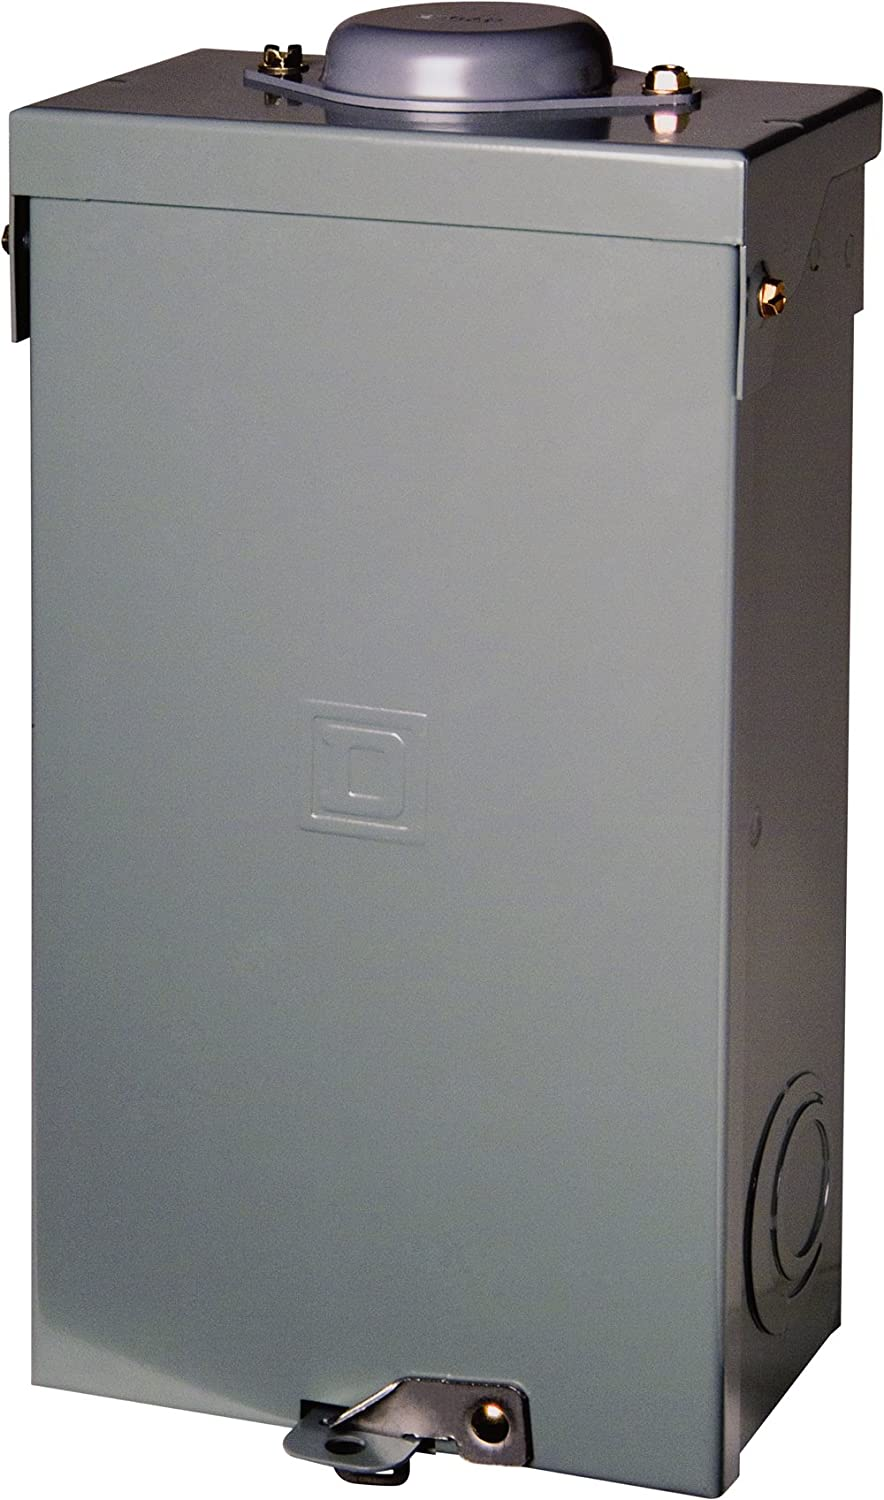 Square D By Schneider Electric Qo2100bnrb Qo 100 Amp Two Pole Enclosed Circuit Breaker Enclosure Outdoor Breakers